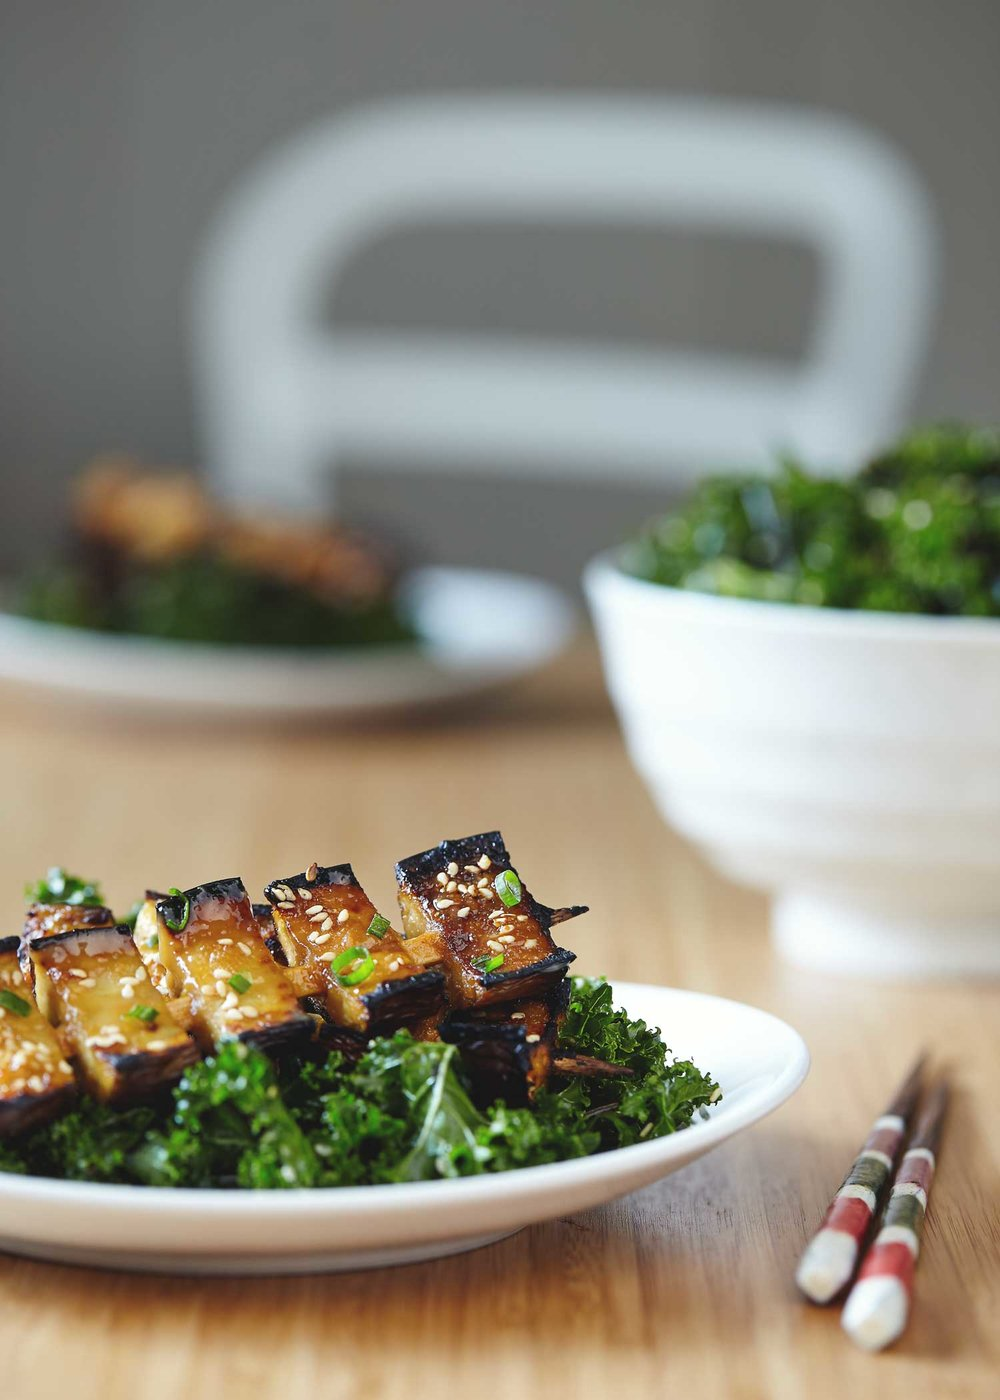 Miso-Glazed-Eggplant-Kebabs-with-Kale-Seaweed-Salad-Evergreen-Kitchen-1.jpg